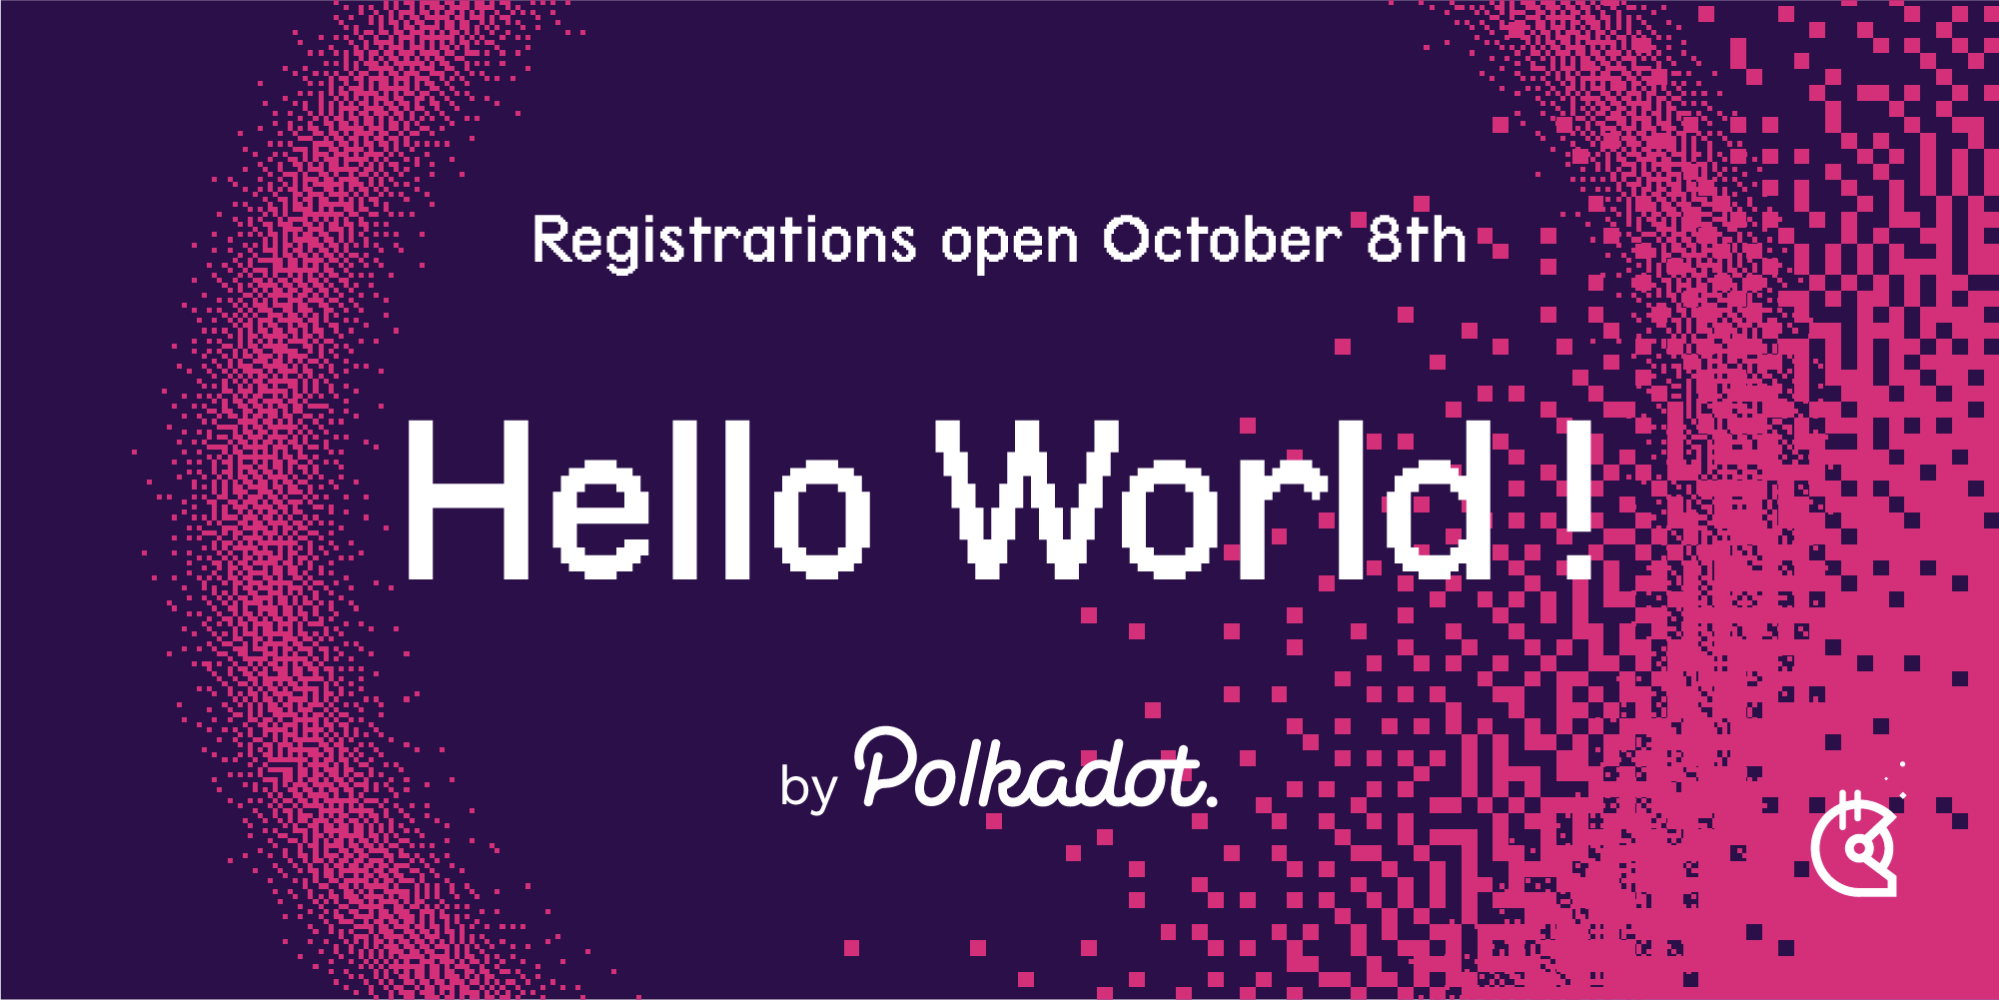 Hello World! by Polkadot: Take the Challenge